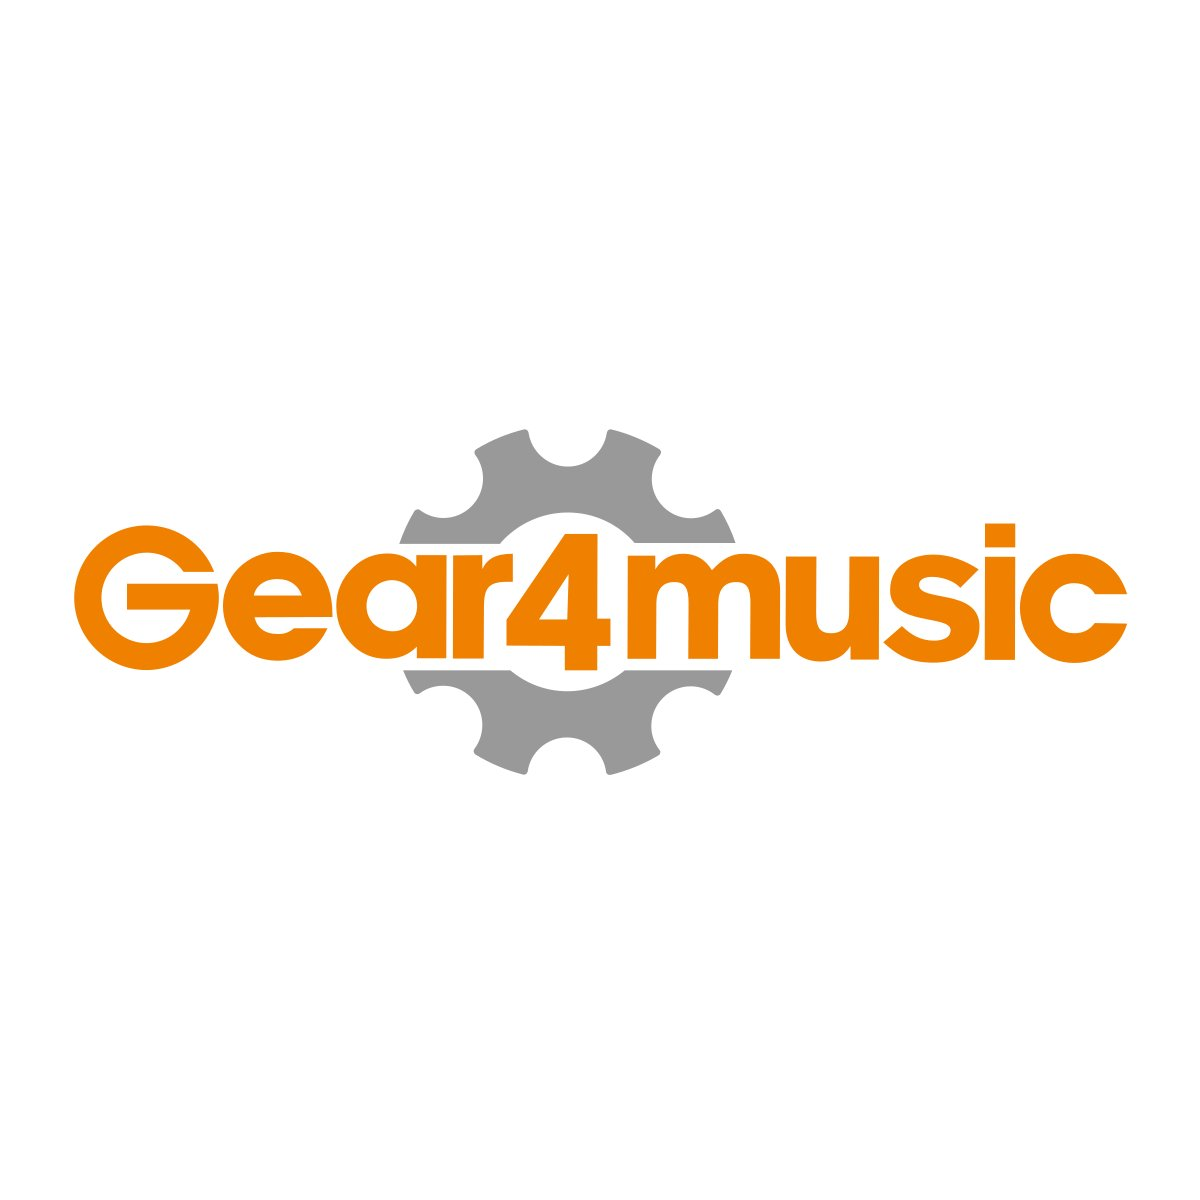 Trompa Doble de Gear4music